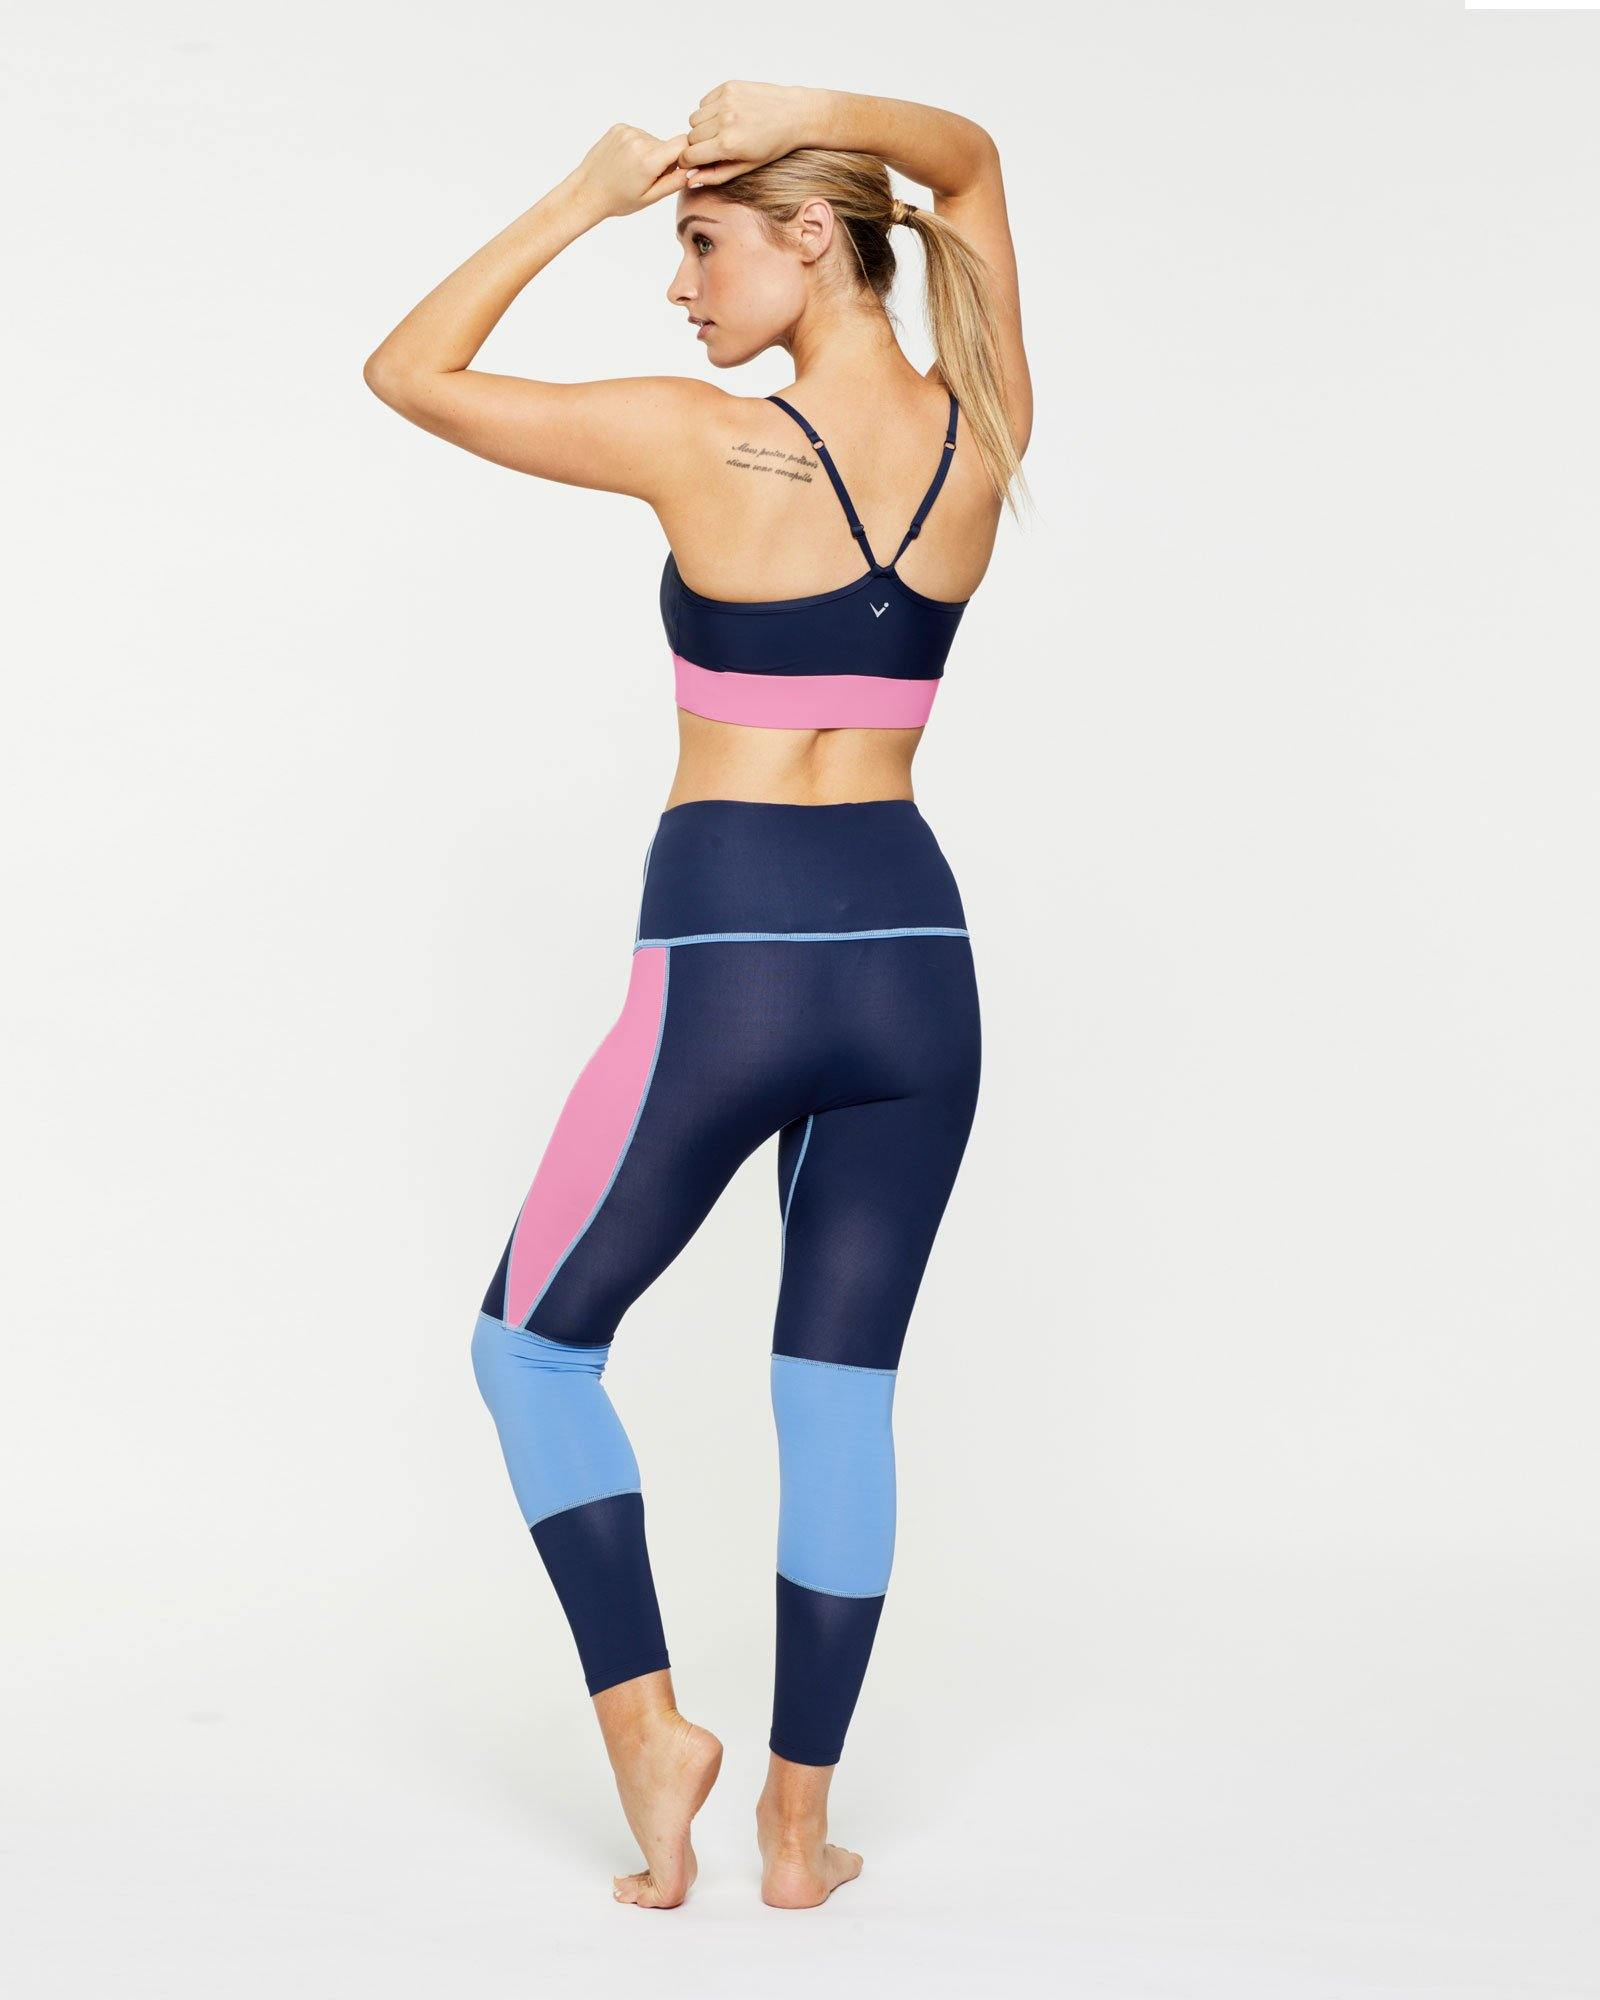 Femininely INFRASPINATUS Navy ACTIVE TOP WITH CONTRAST pink UNDER BUST BAND & ADJUSTABLE STRAPS, WORN WITH GRACILIS 7/8 LENGTH LEGGING, back VIEW, great for Pilates and in-studio workouts